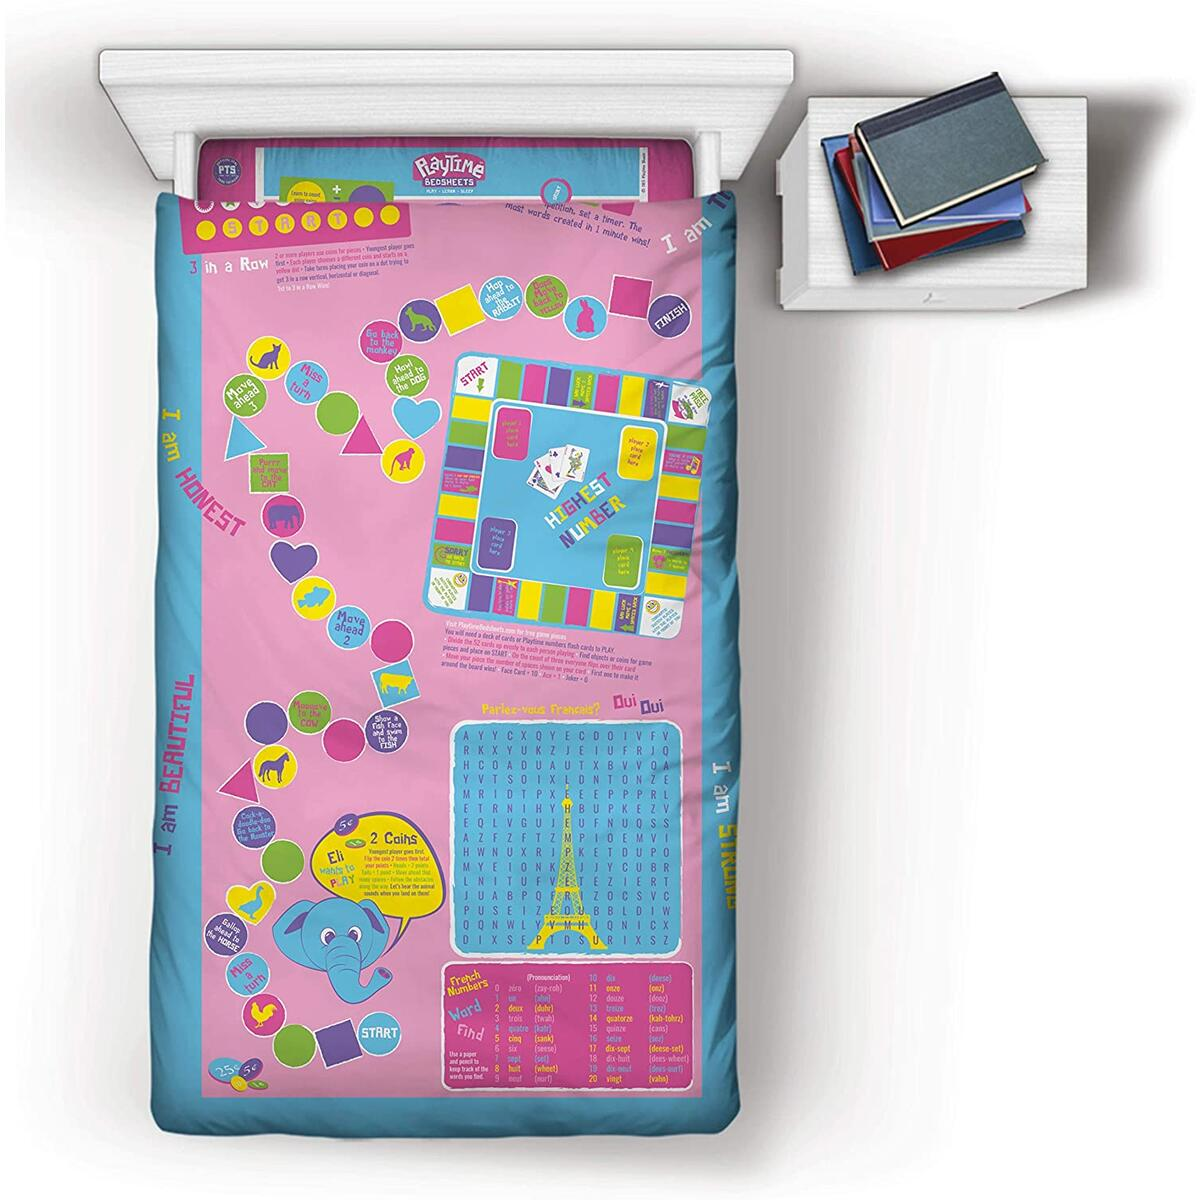 Playtime Bed Sheets Girls Twin Sheet Set! Over 50 Fun and Educational Games & Puzzles. 3 Piece Soft Microfiber Bedding Set.